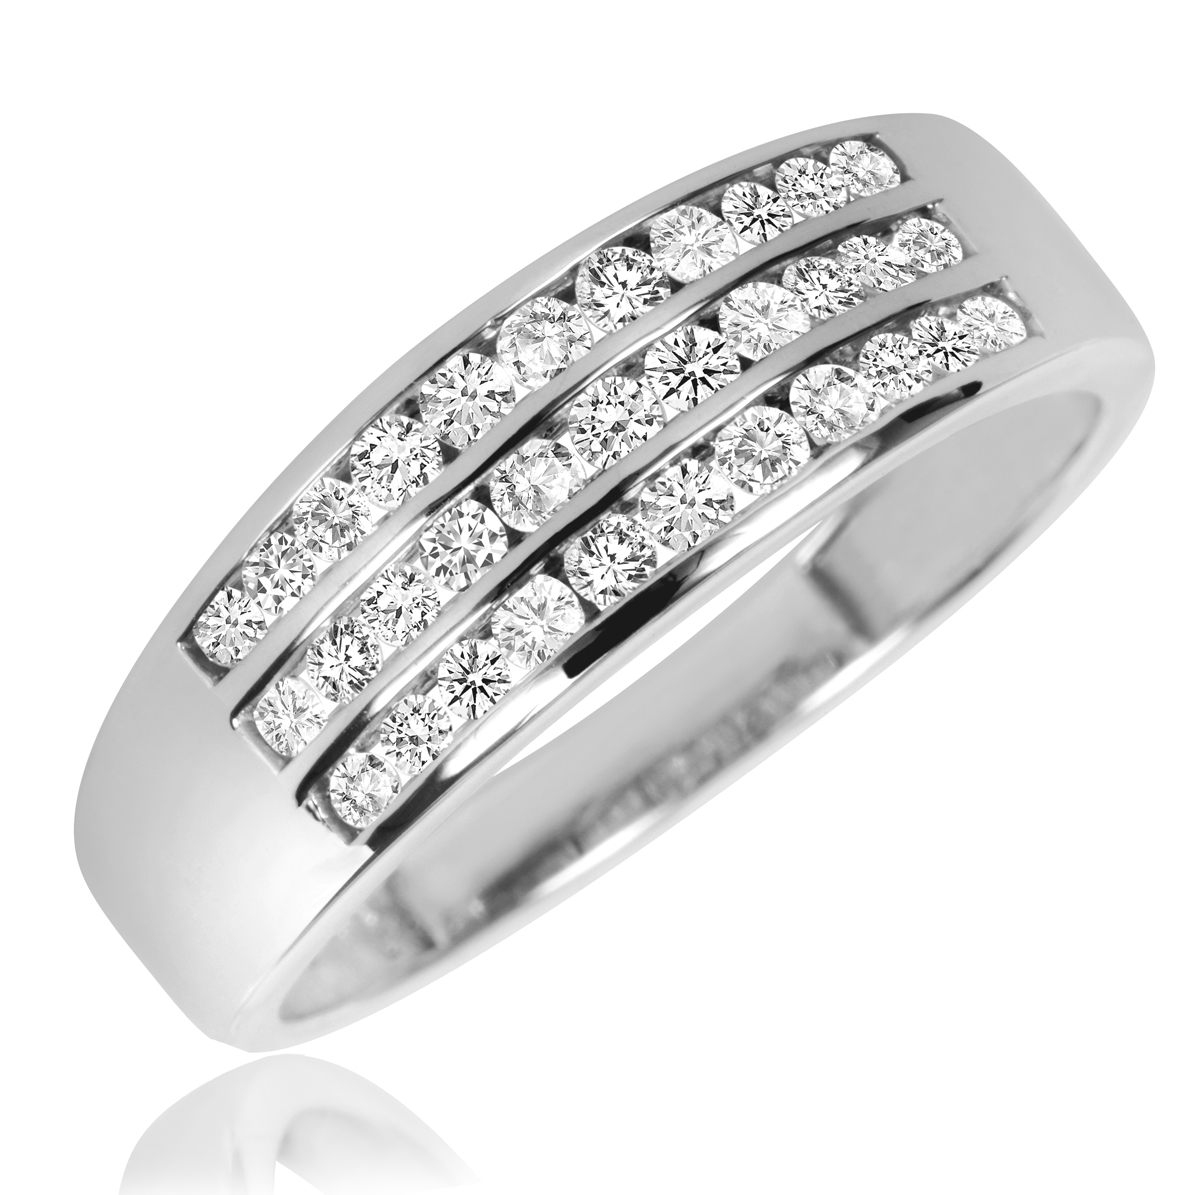 Mens Wedding Band: White Male Wedding Rings At Reisefeber.org